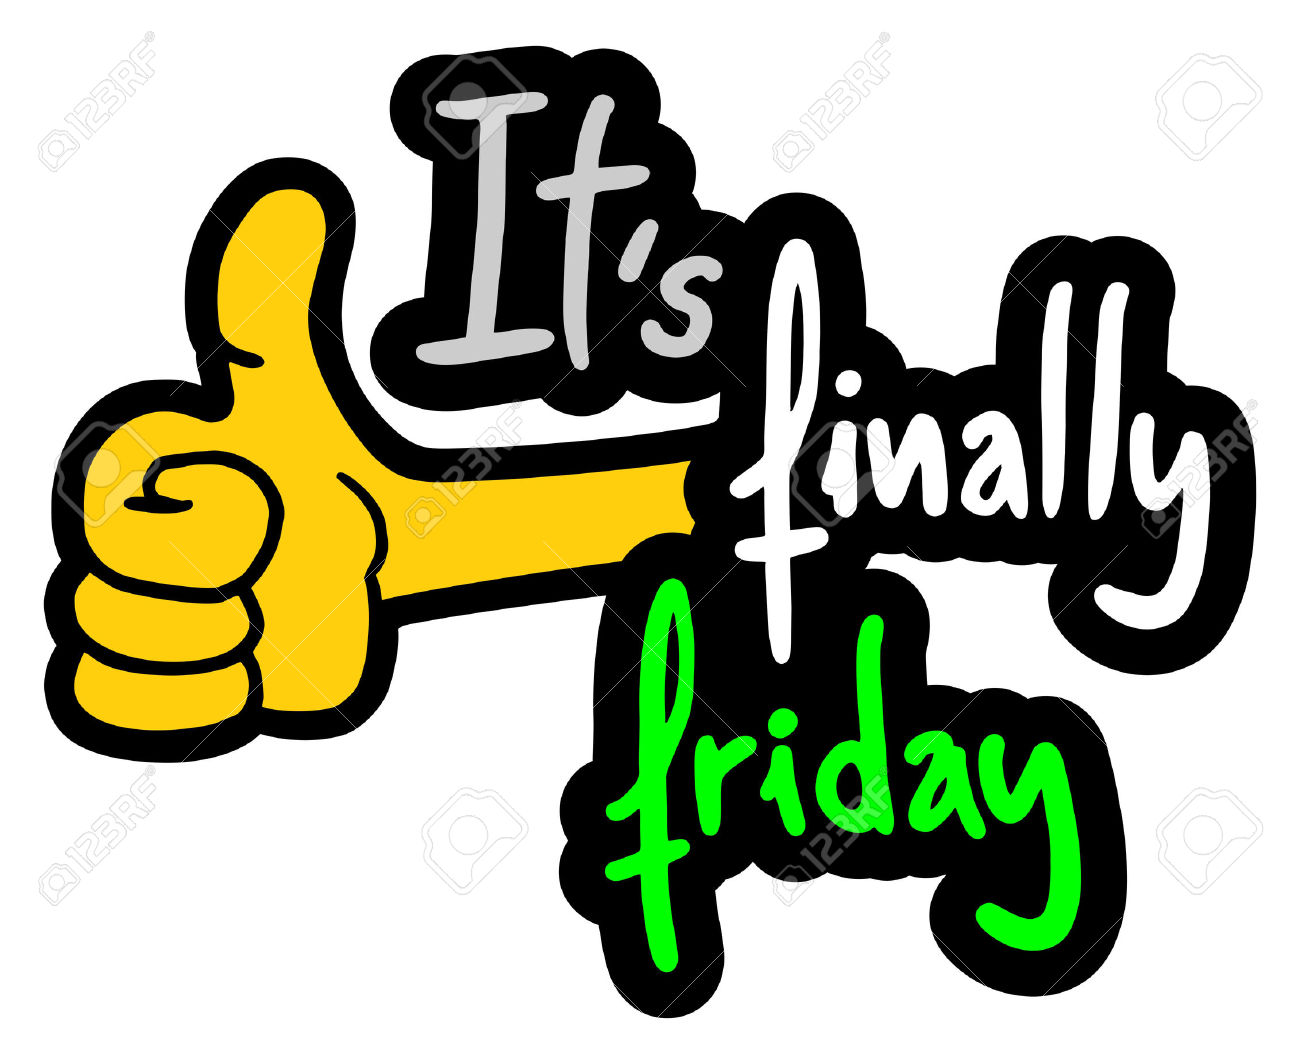 409 Happy Friday free clipart.